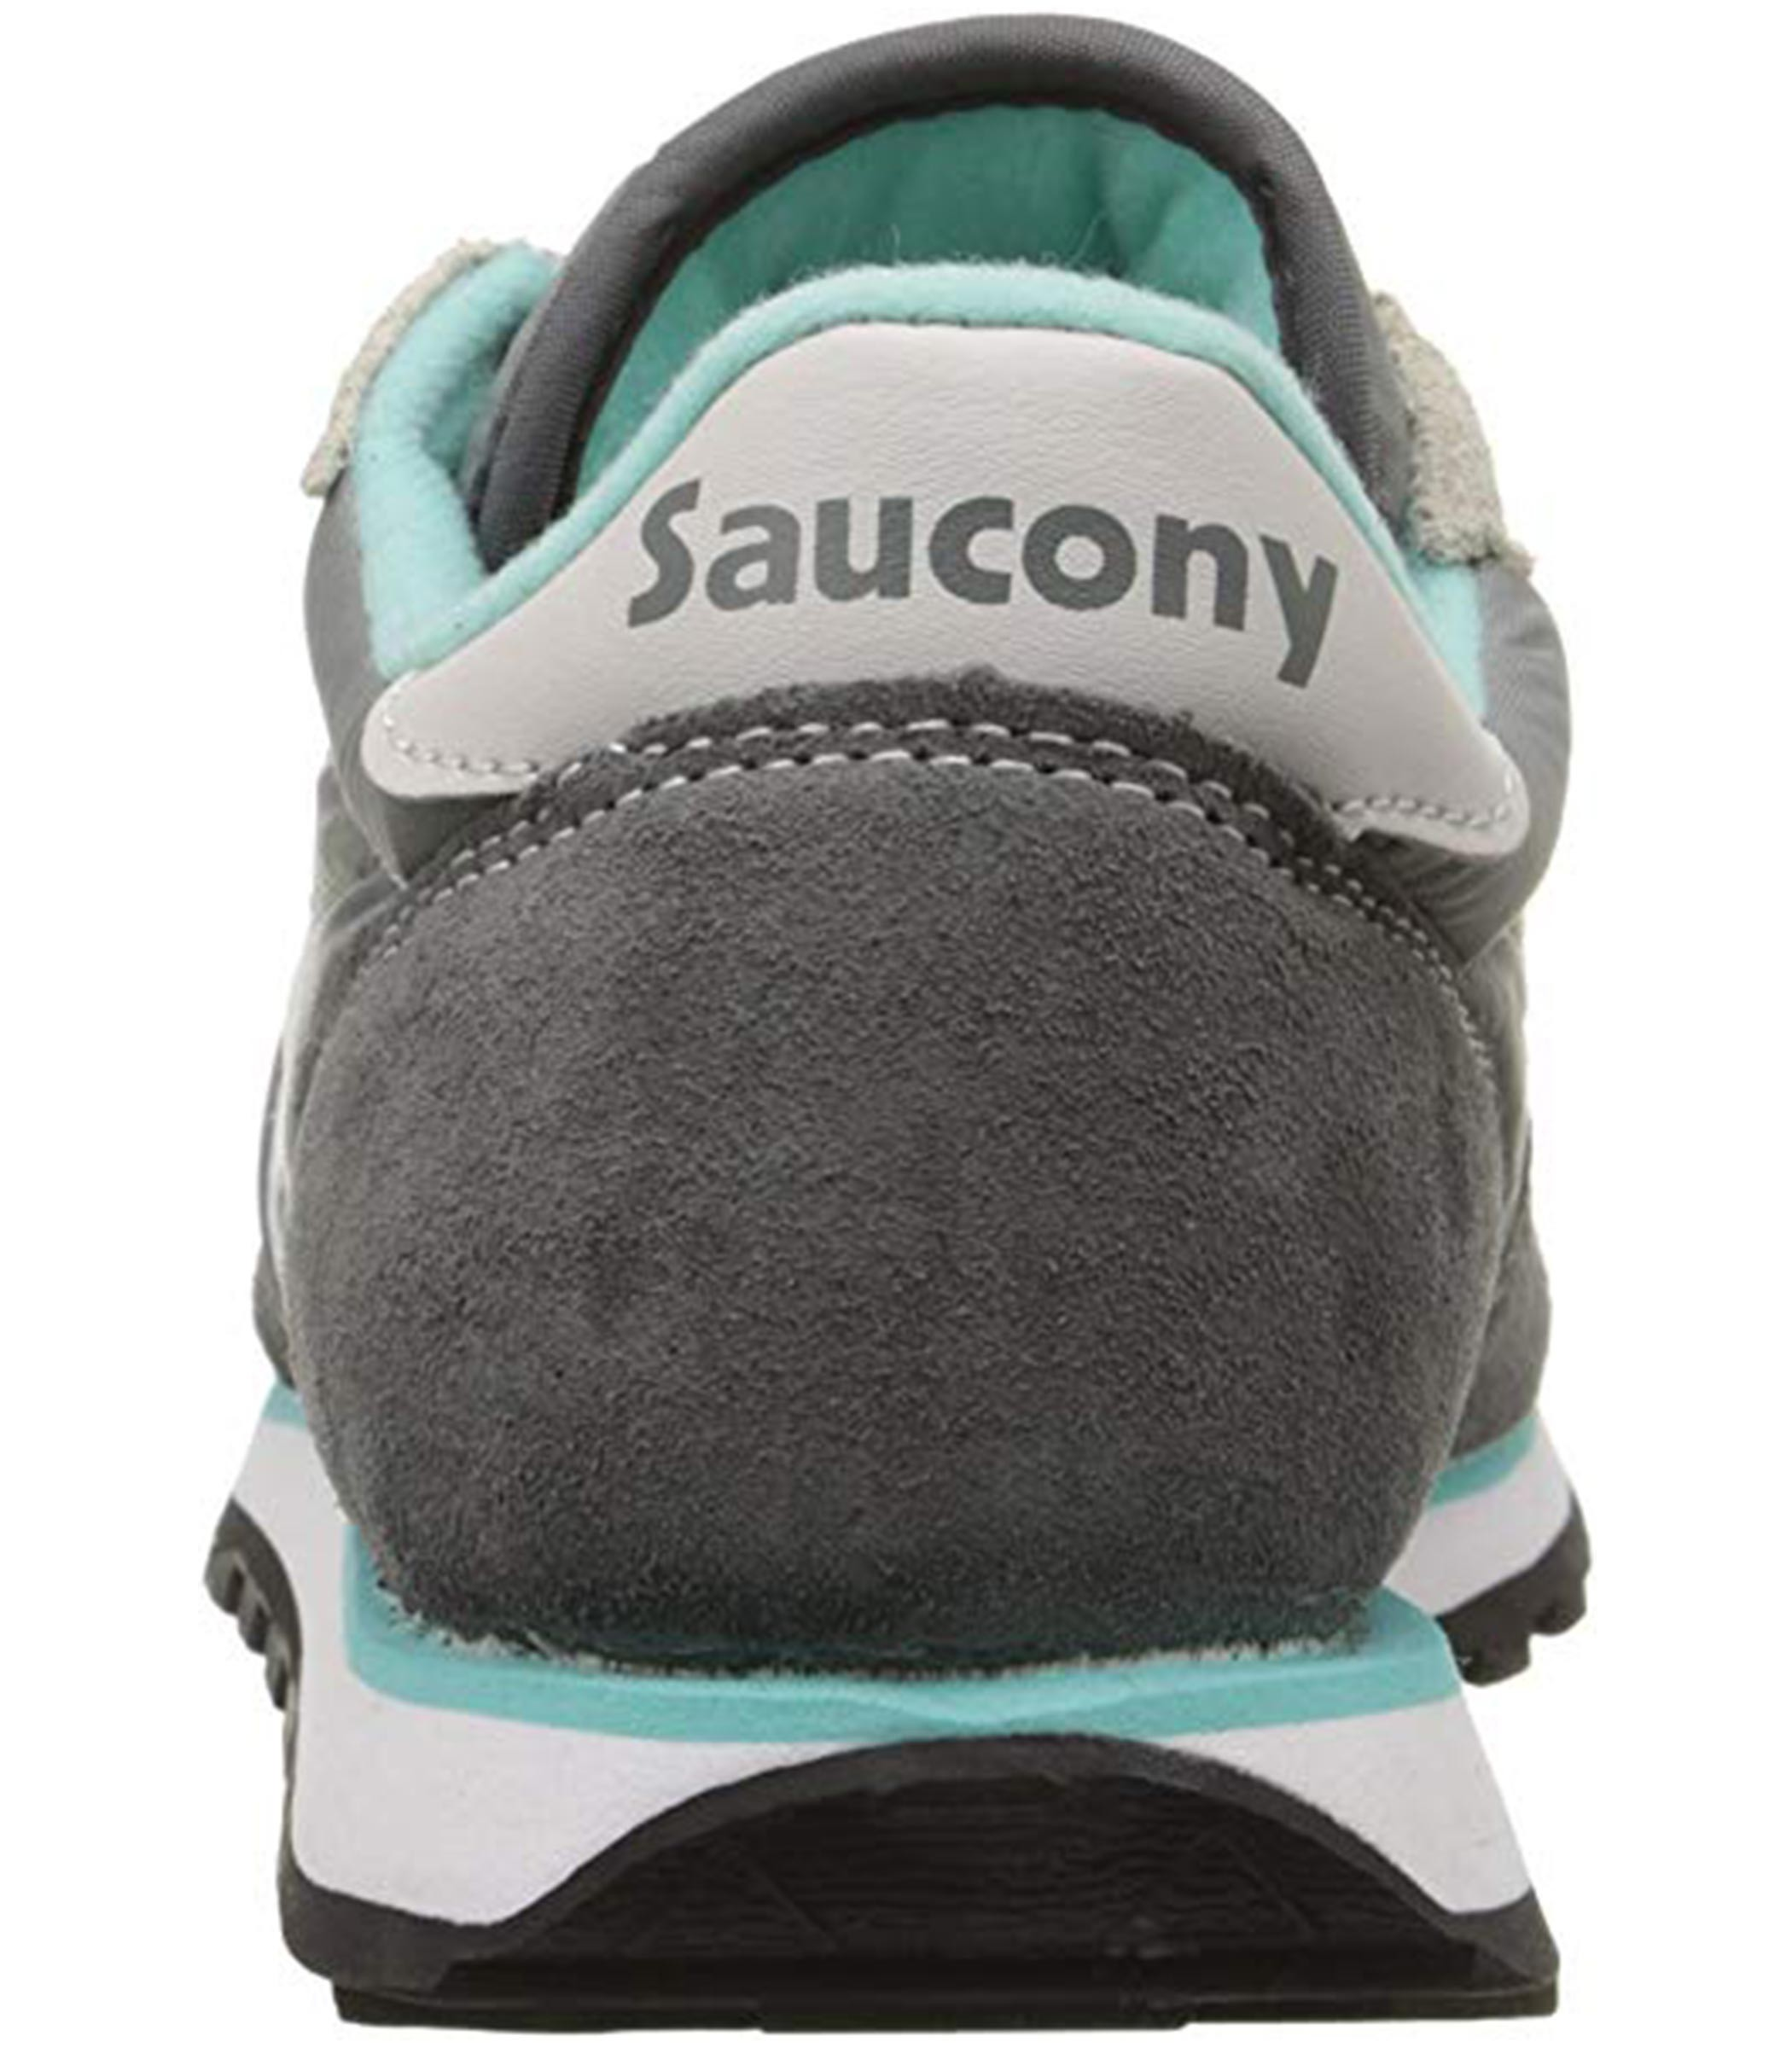 huge discount 7ae4e 504ee Pro 103 Donna Low Jazz 1866 Scarpe Rif Saucony Sneakers IFq1C1